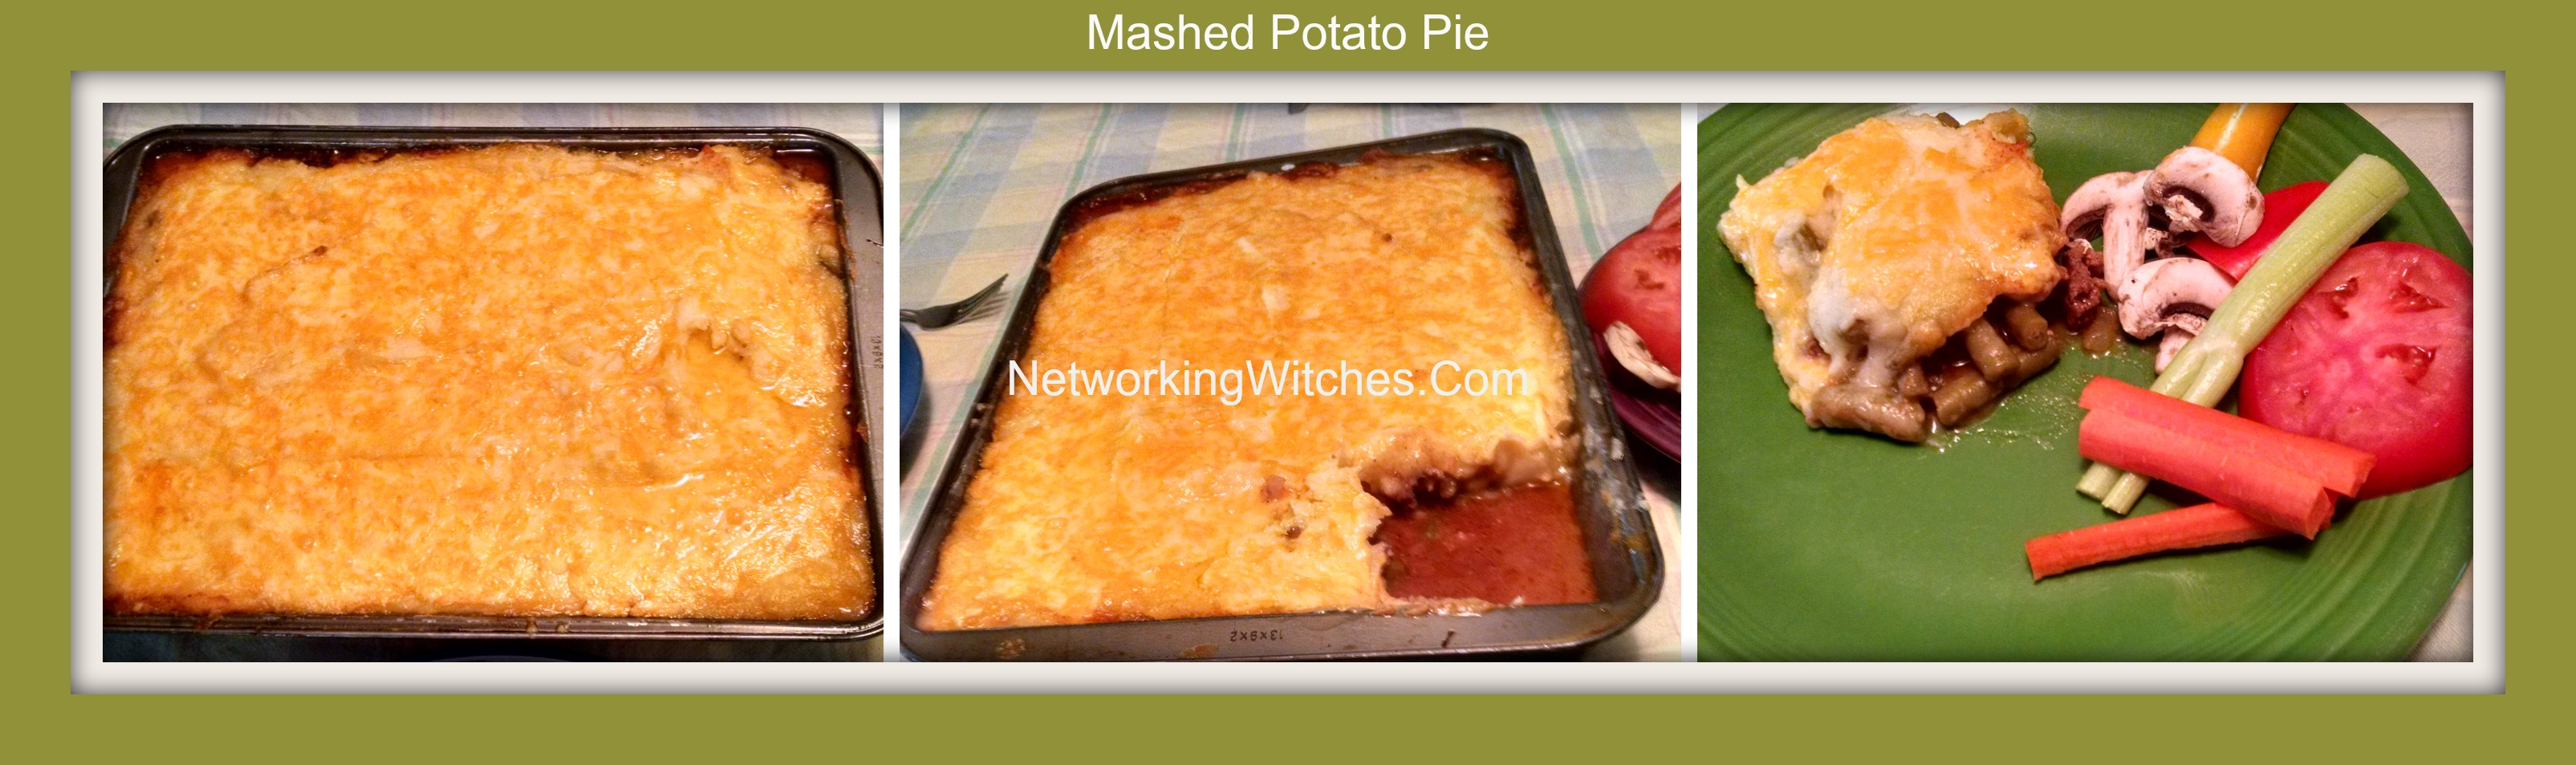 Delicious Mashed Potato Pie